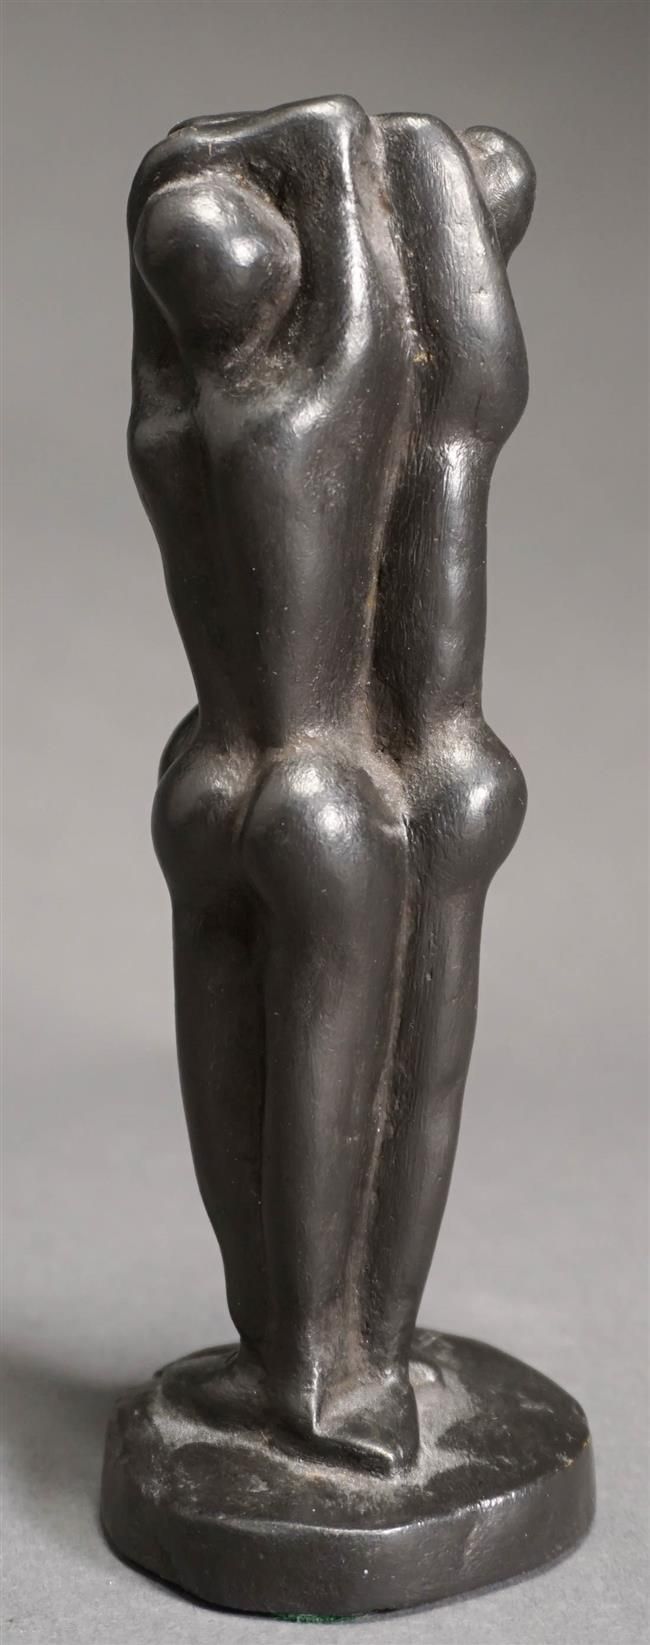 Weiss, Three Standing Nude Figures, Black Patinated Bronze, 6.25 Overall Height